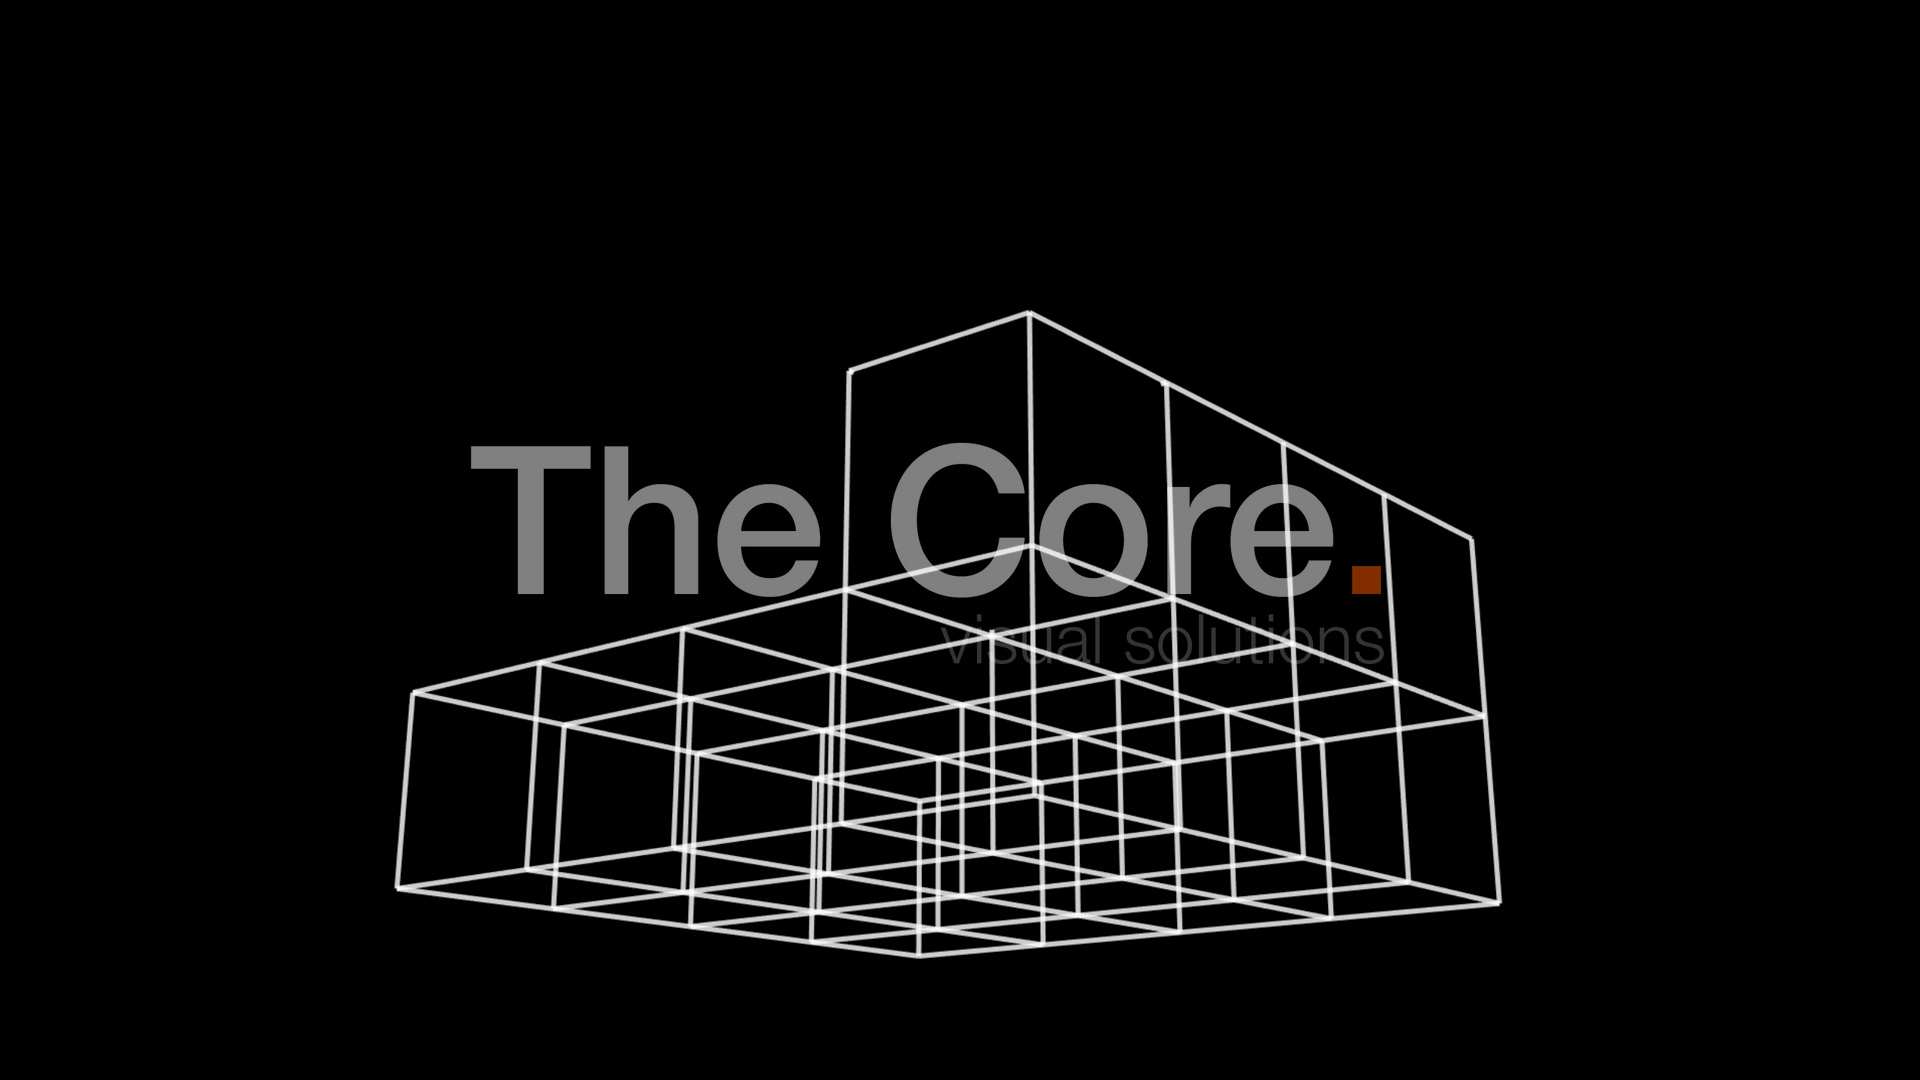 THE CUBE - VISUAL LOOPS